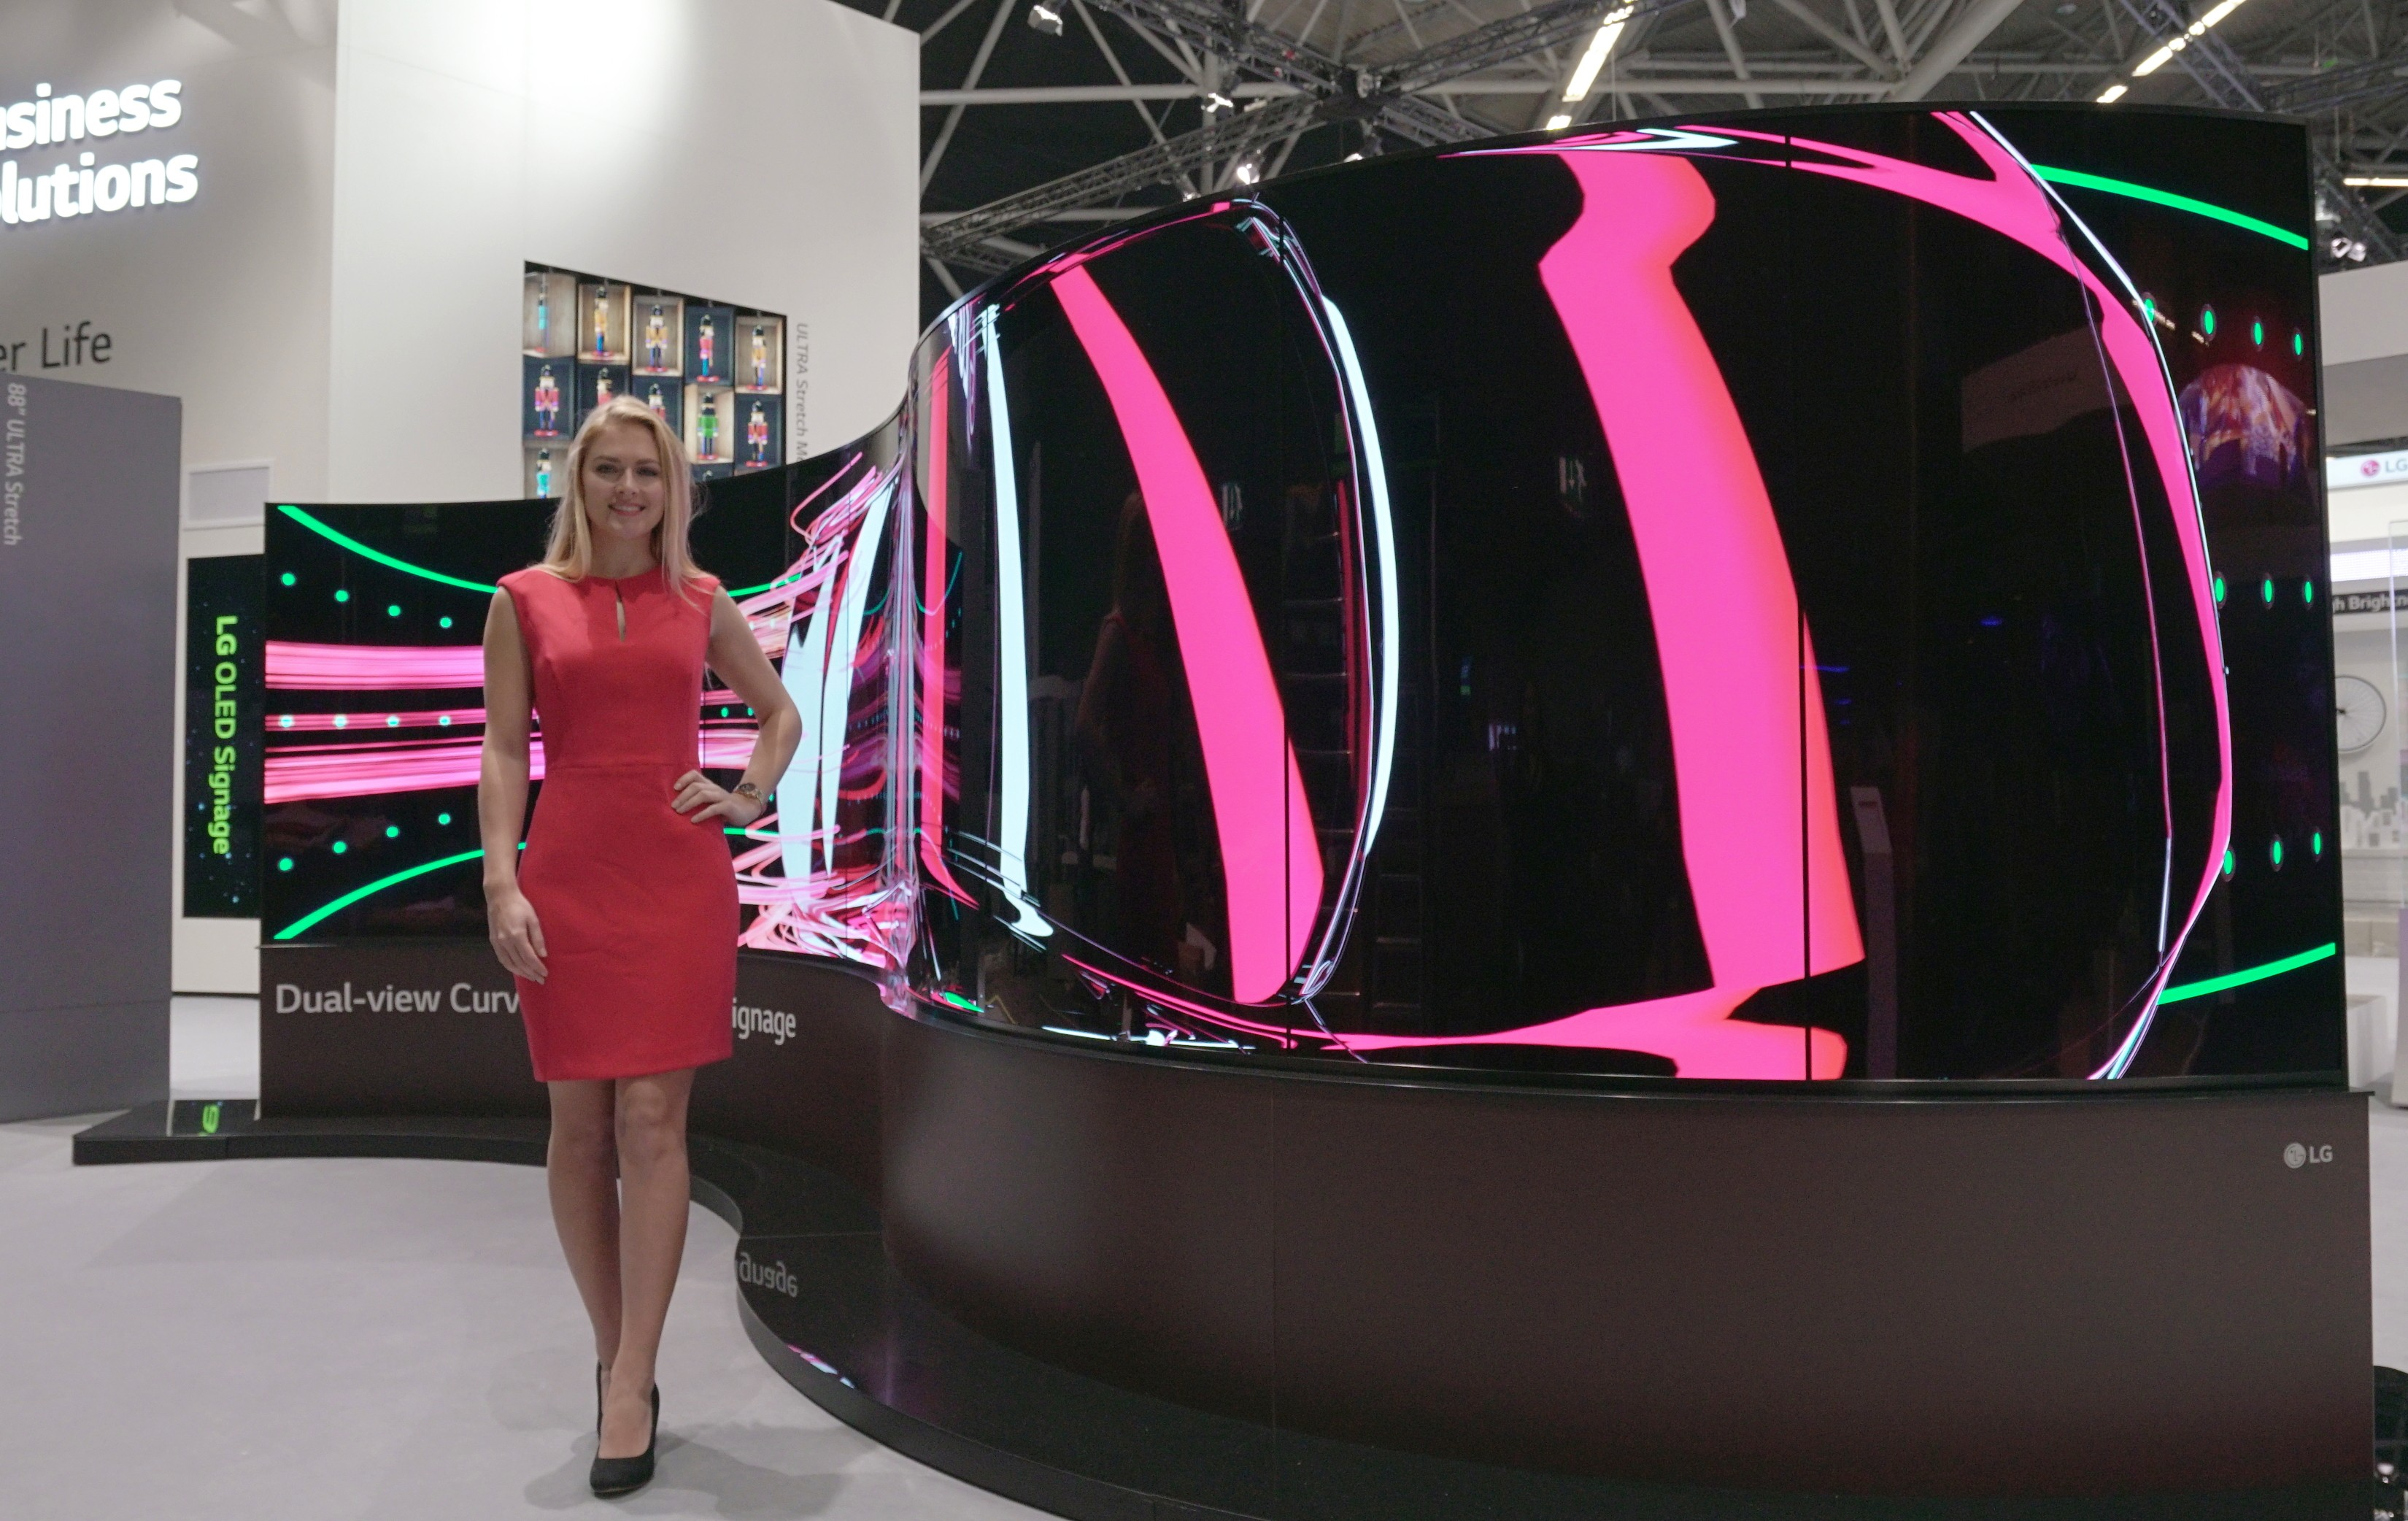 A model standing on the left side of LG's 65-inch Dual-View Curved Tiling OLED signage